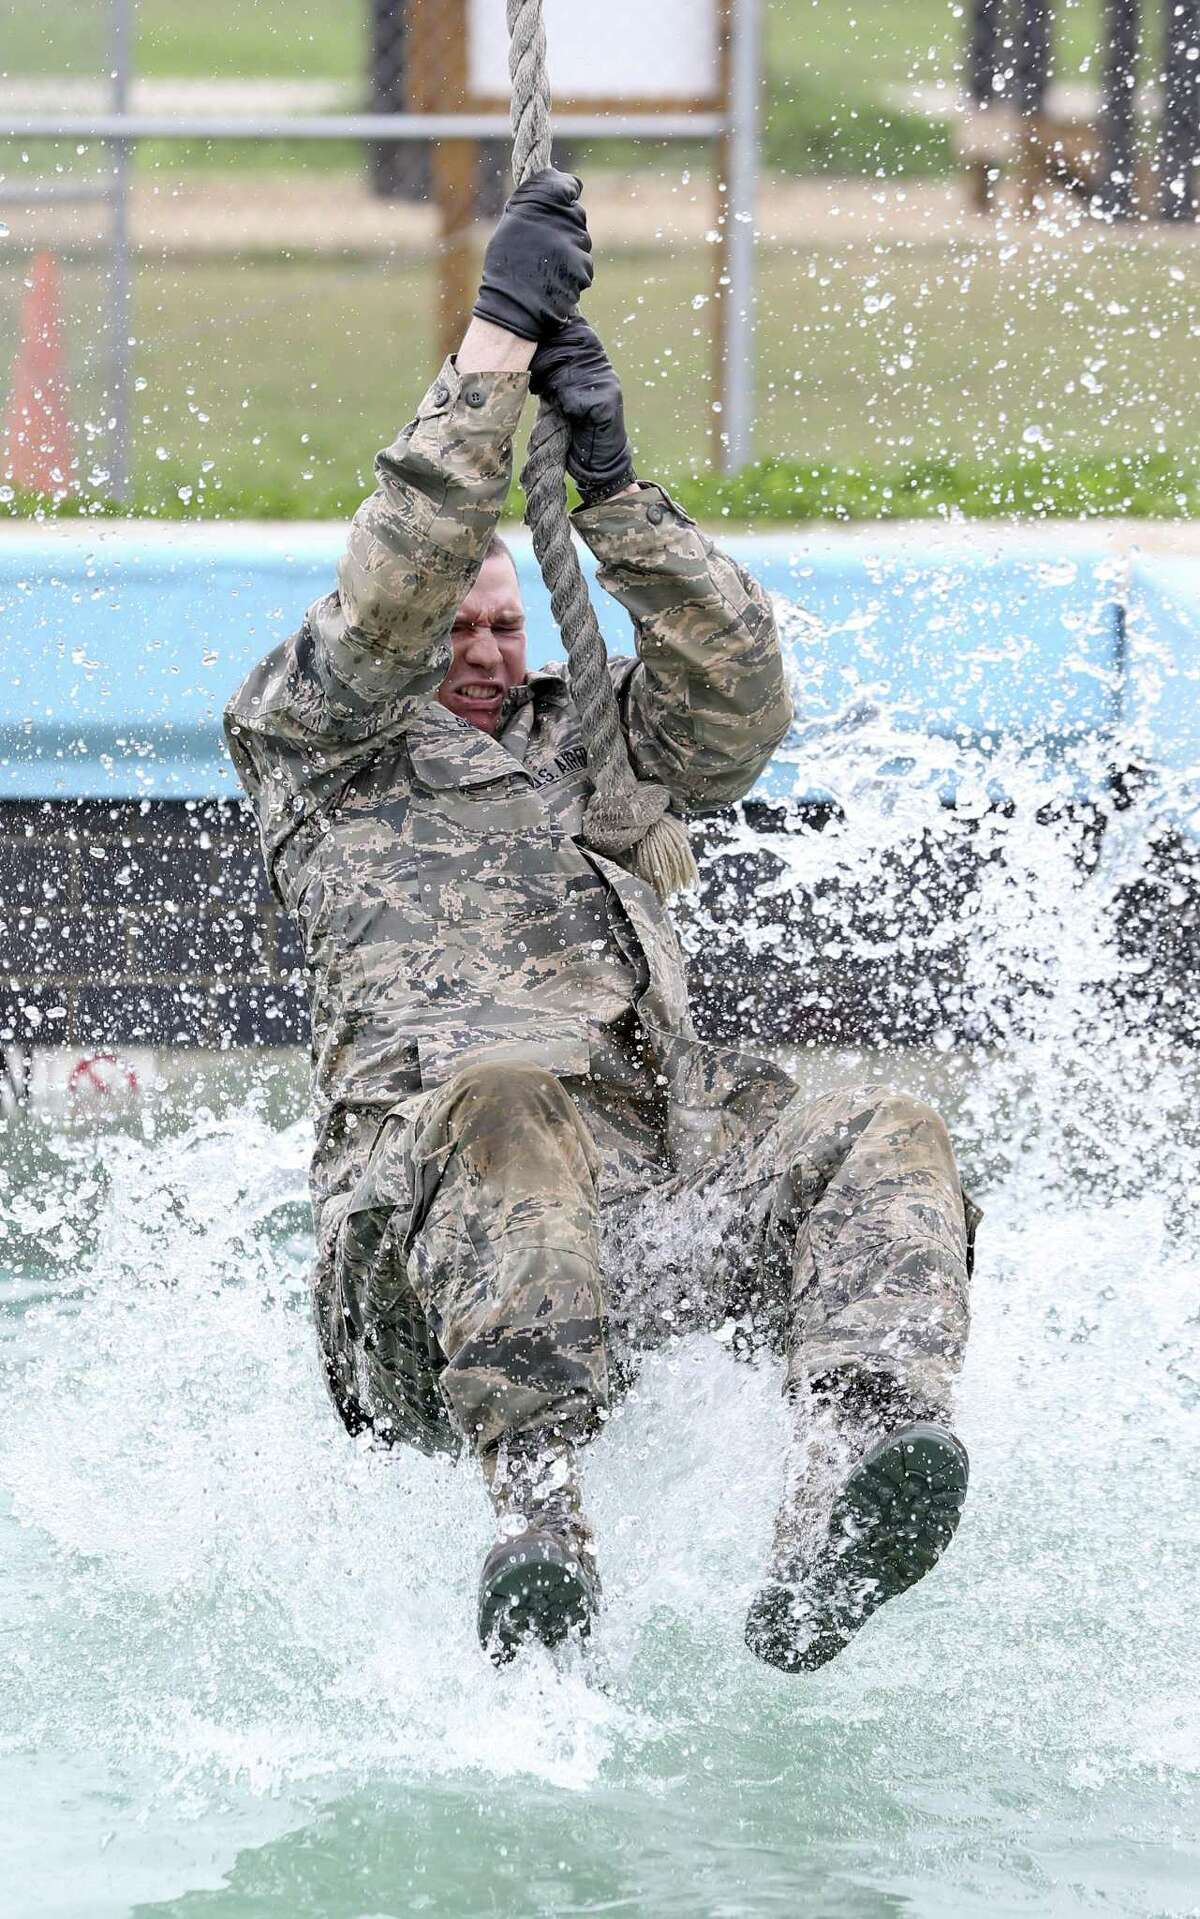 An Air Force recruit skims across the water in an exercise in the CLAW obstacle course, part of the BEAST program at Joint Base San Antonio-Lackland, on Feb. 6, 2019.